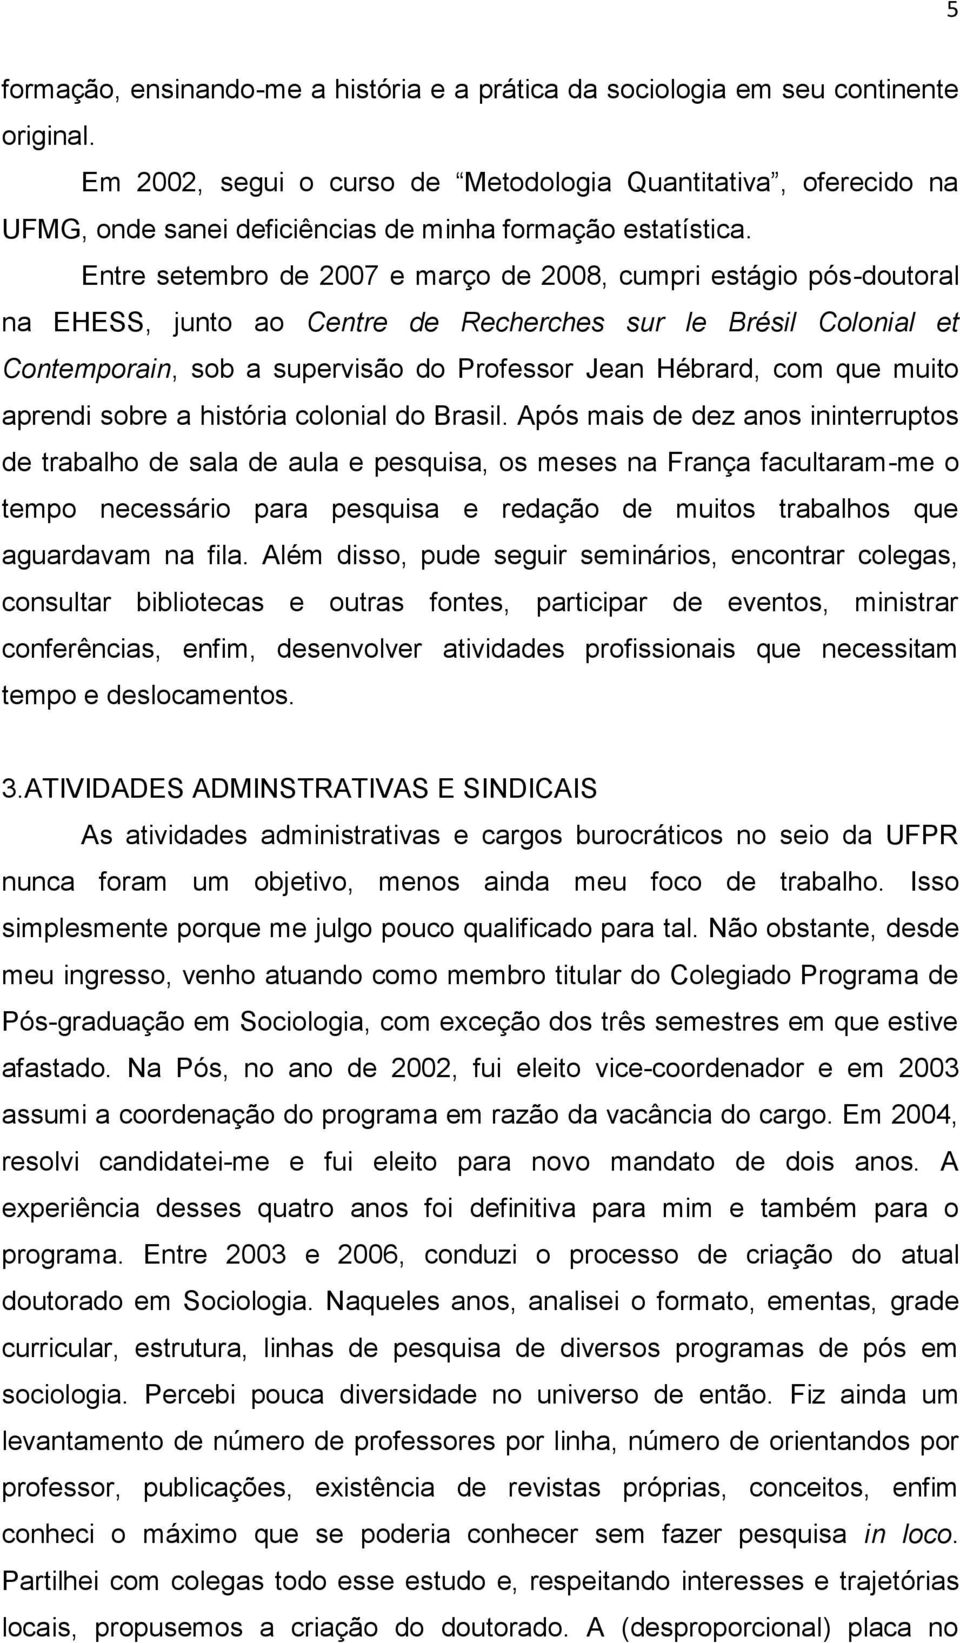 Entre setembro de 2007 e março de 2008, cumpri estágio pós-doutoral na EHESS, junto ao Centre de Recherches sur le Brésil Colonial et Contemporain, sob a supervisão do Professor Jean Hébrard, com que